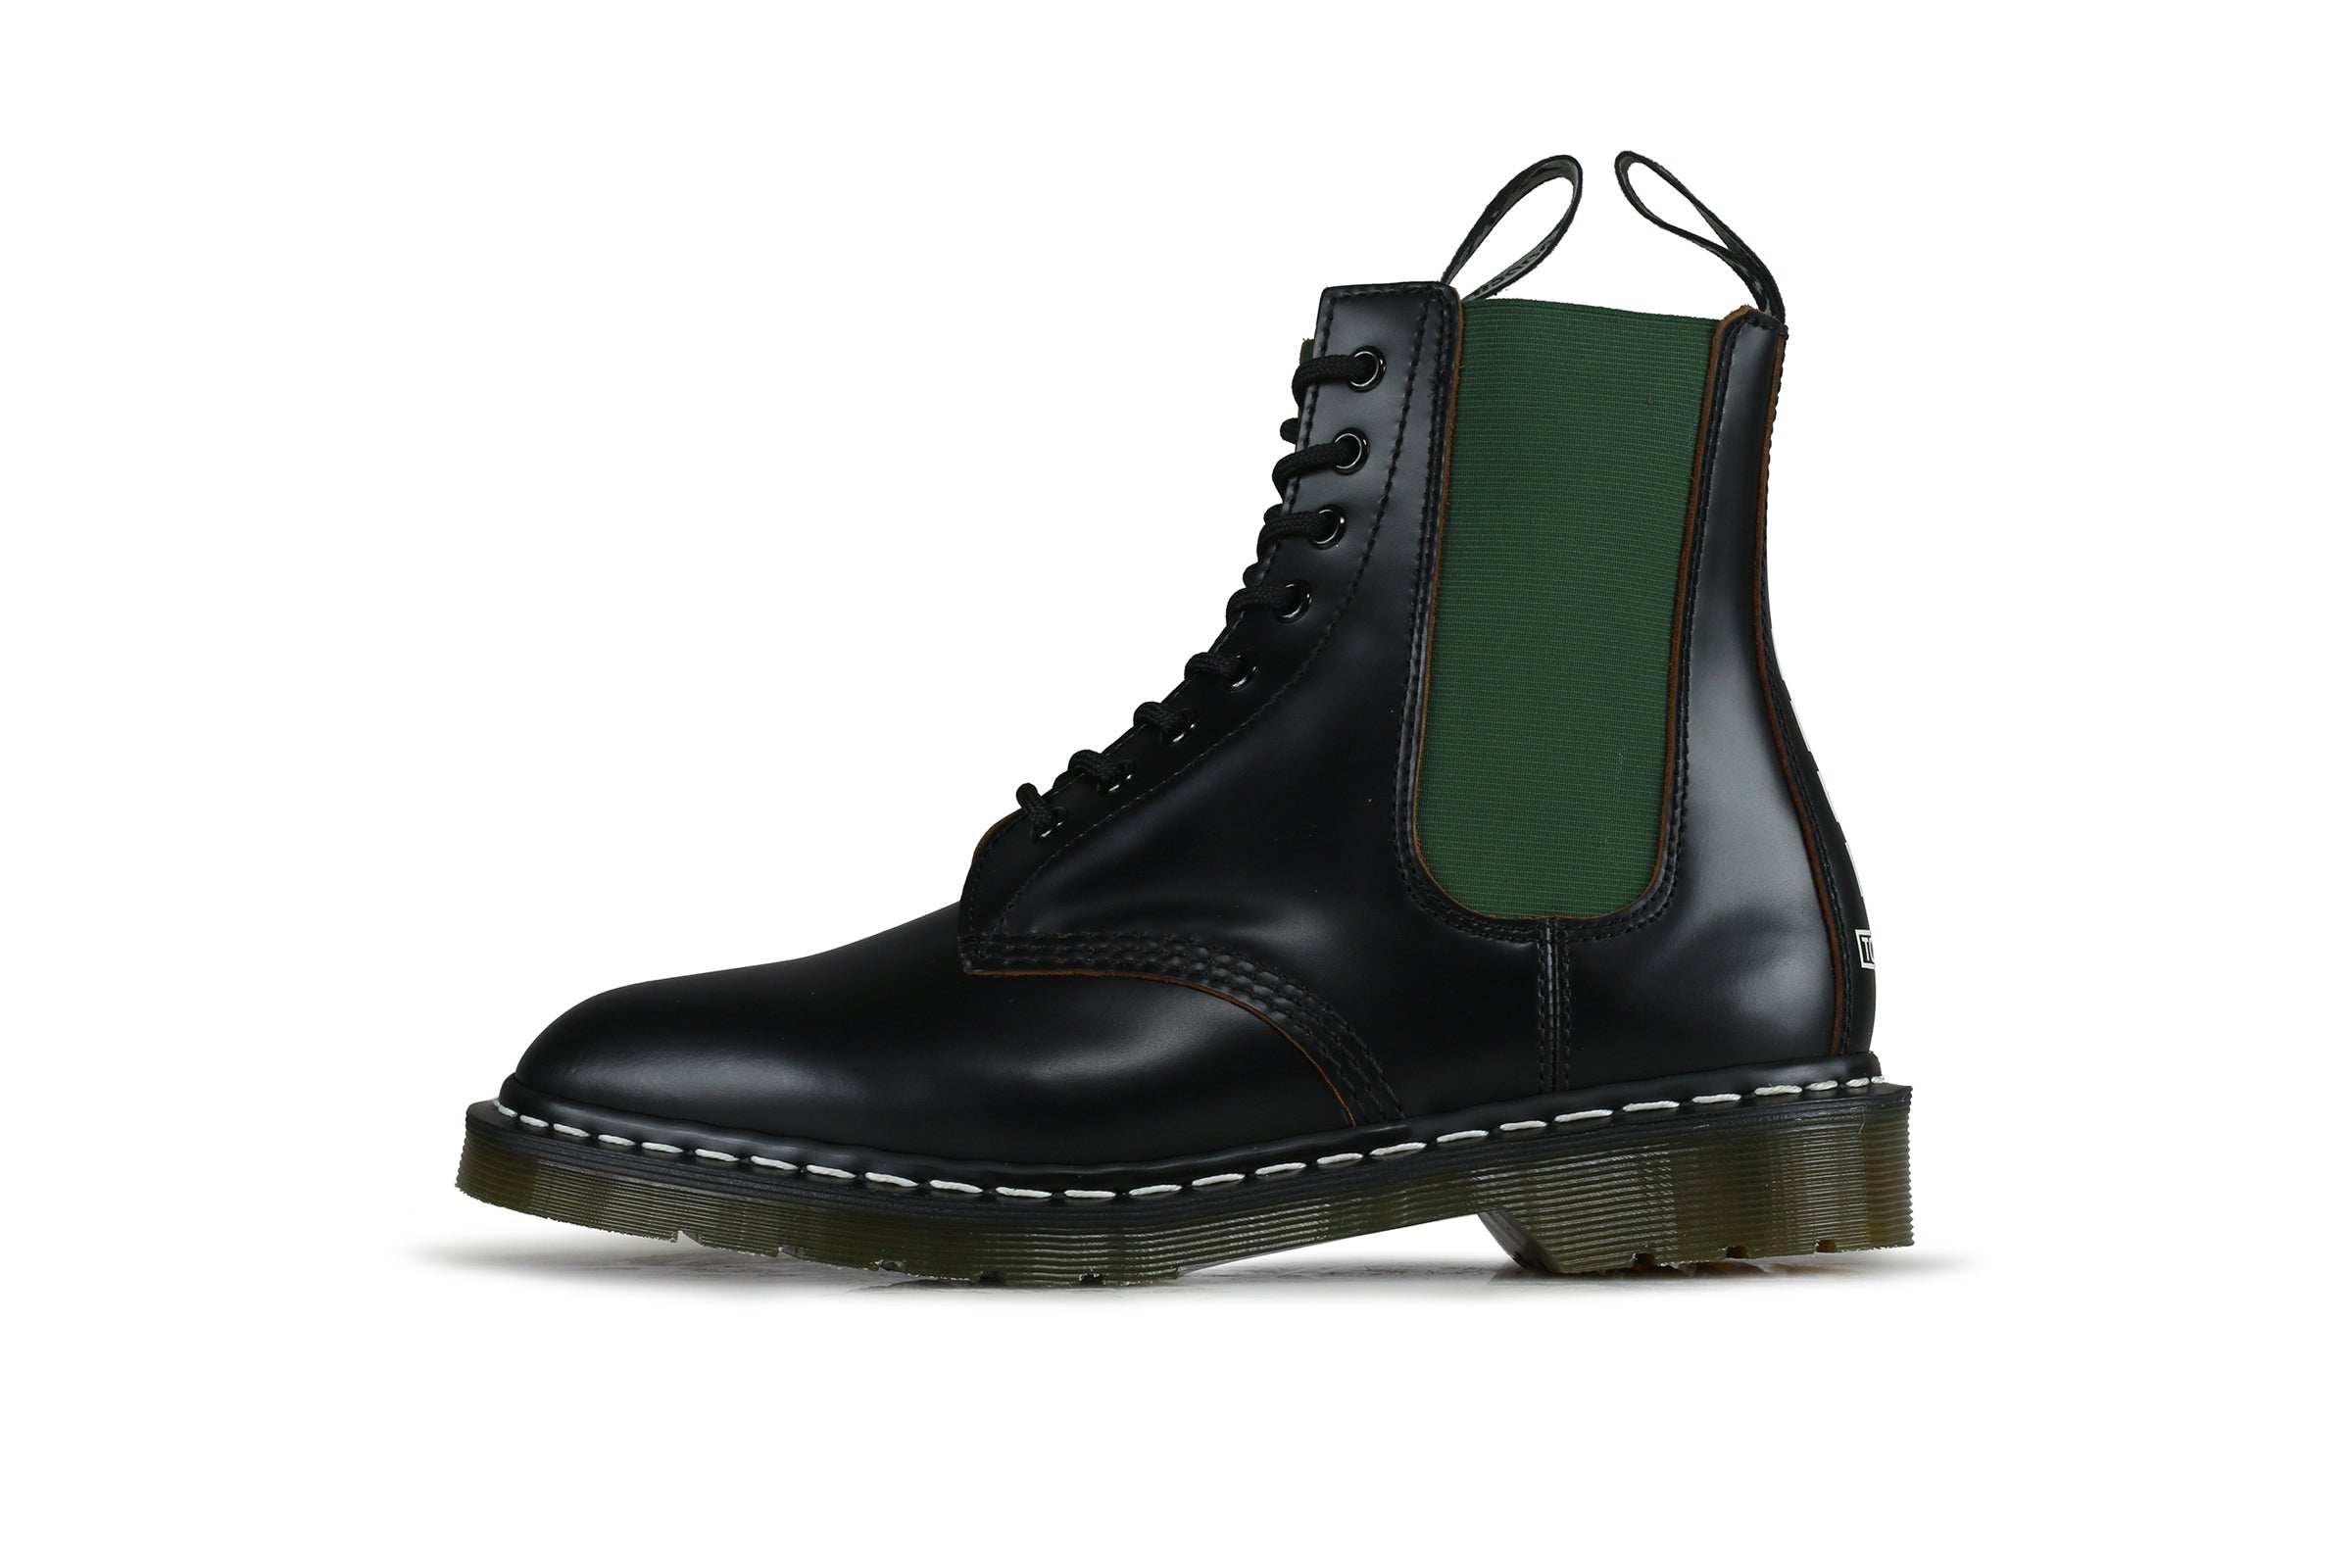 Dr. Martens 1460 x Neighborhood